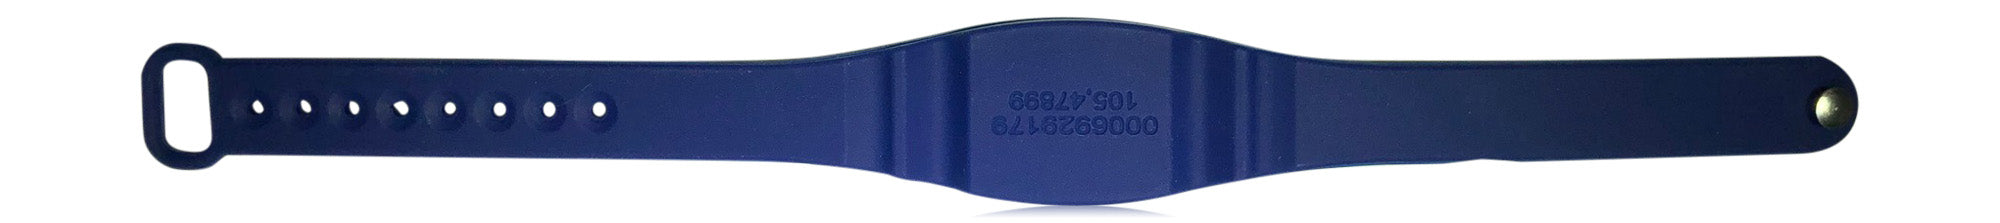 25 Blue Adjustable 26 Bit EM Proximity Wristbands